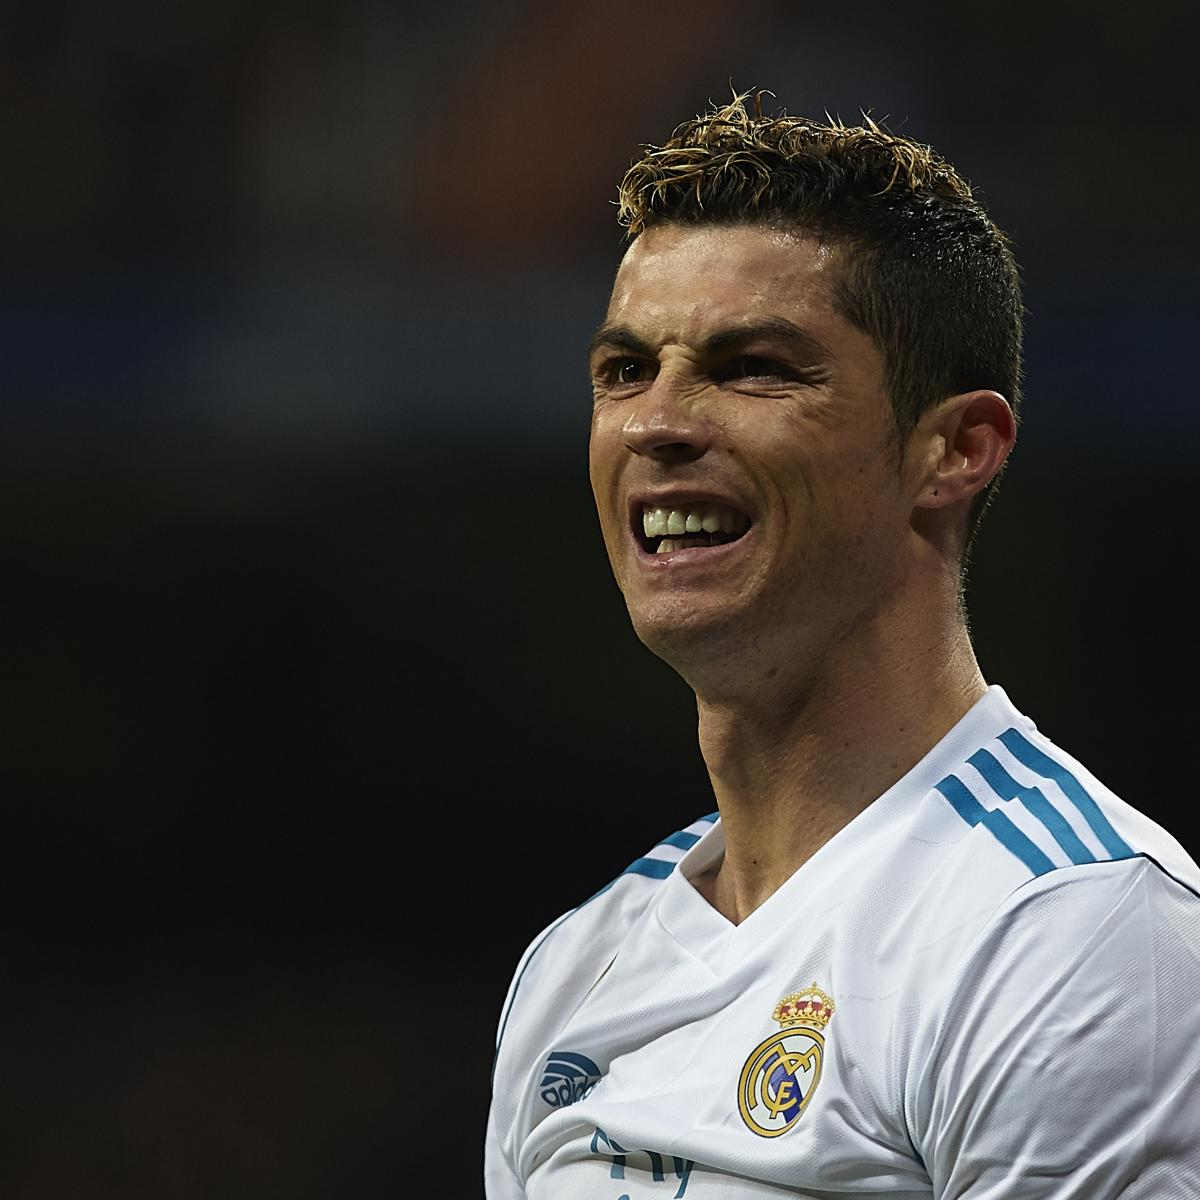 Psg Retain Champions League Favouritism Ahead Of: Cristiano Ronaldo Excluded From Fans' Combined Real Madrid